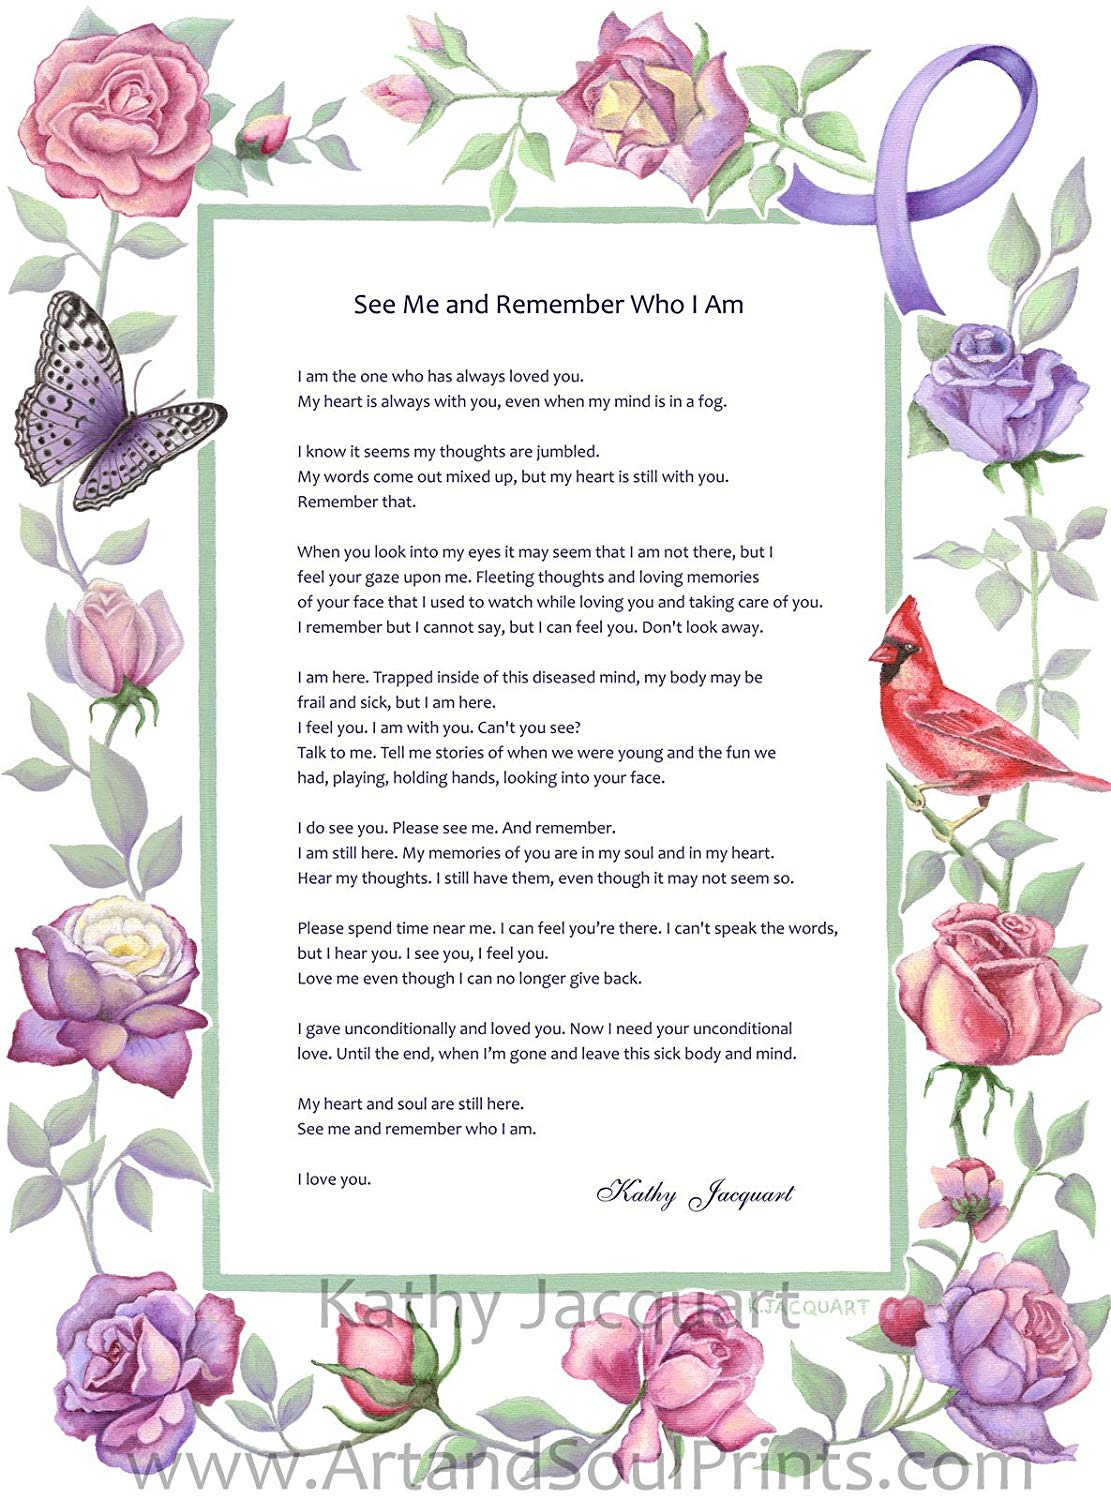 Altheimers border clipart svg royalty free download See Me and Remember Who I Am – Alzheimer\'s Poem by Kathy Jacquart – 12 x 16  Art Print Wall Poster – Print from original artwork in vivid color on ... svg royalty free download